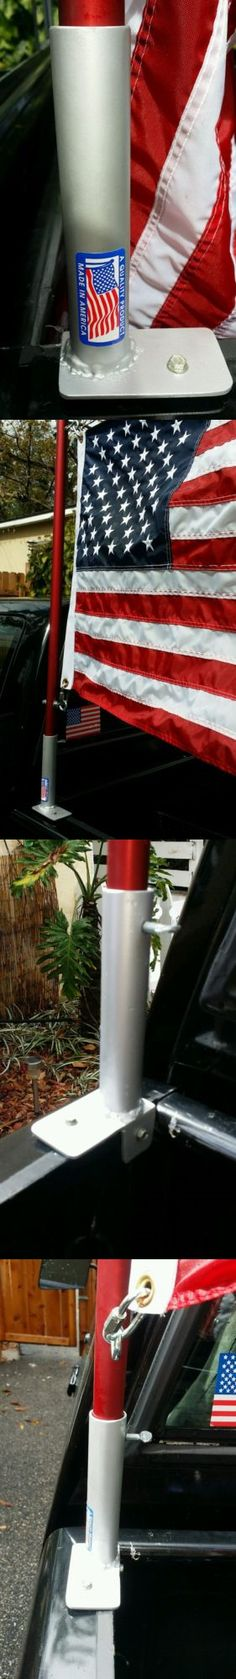 Flag Poles And Parts 43536 Universal Truck Bed Corner Mount Flag Pole Holder Buy It Now Only 43 99 On Ebay Flag Pole Flag Pole Holder Flag